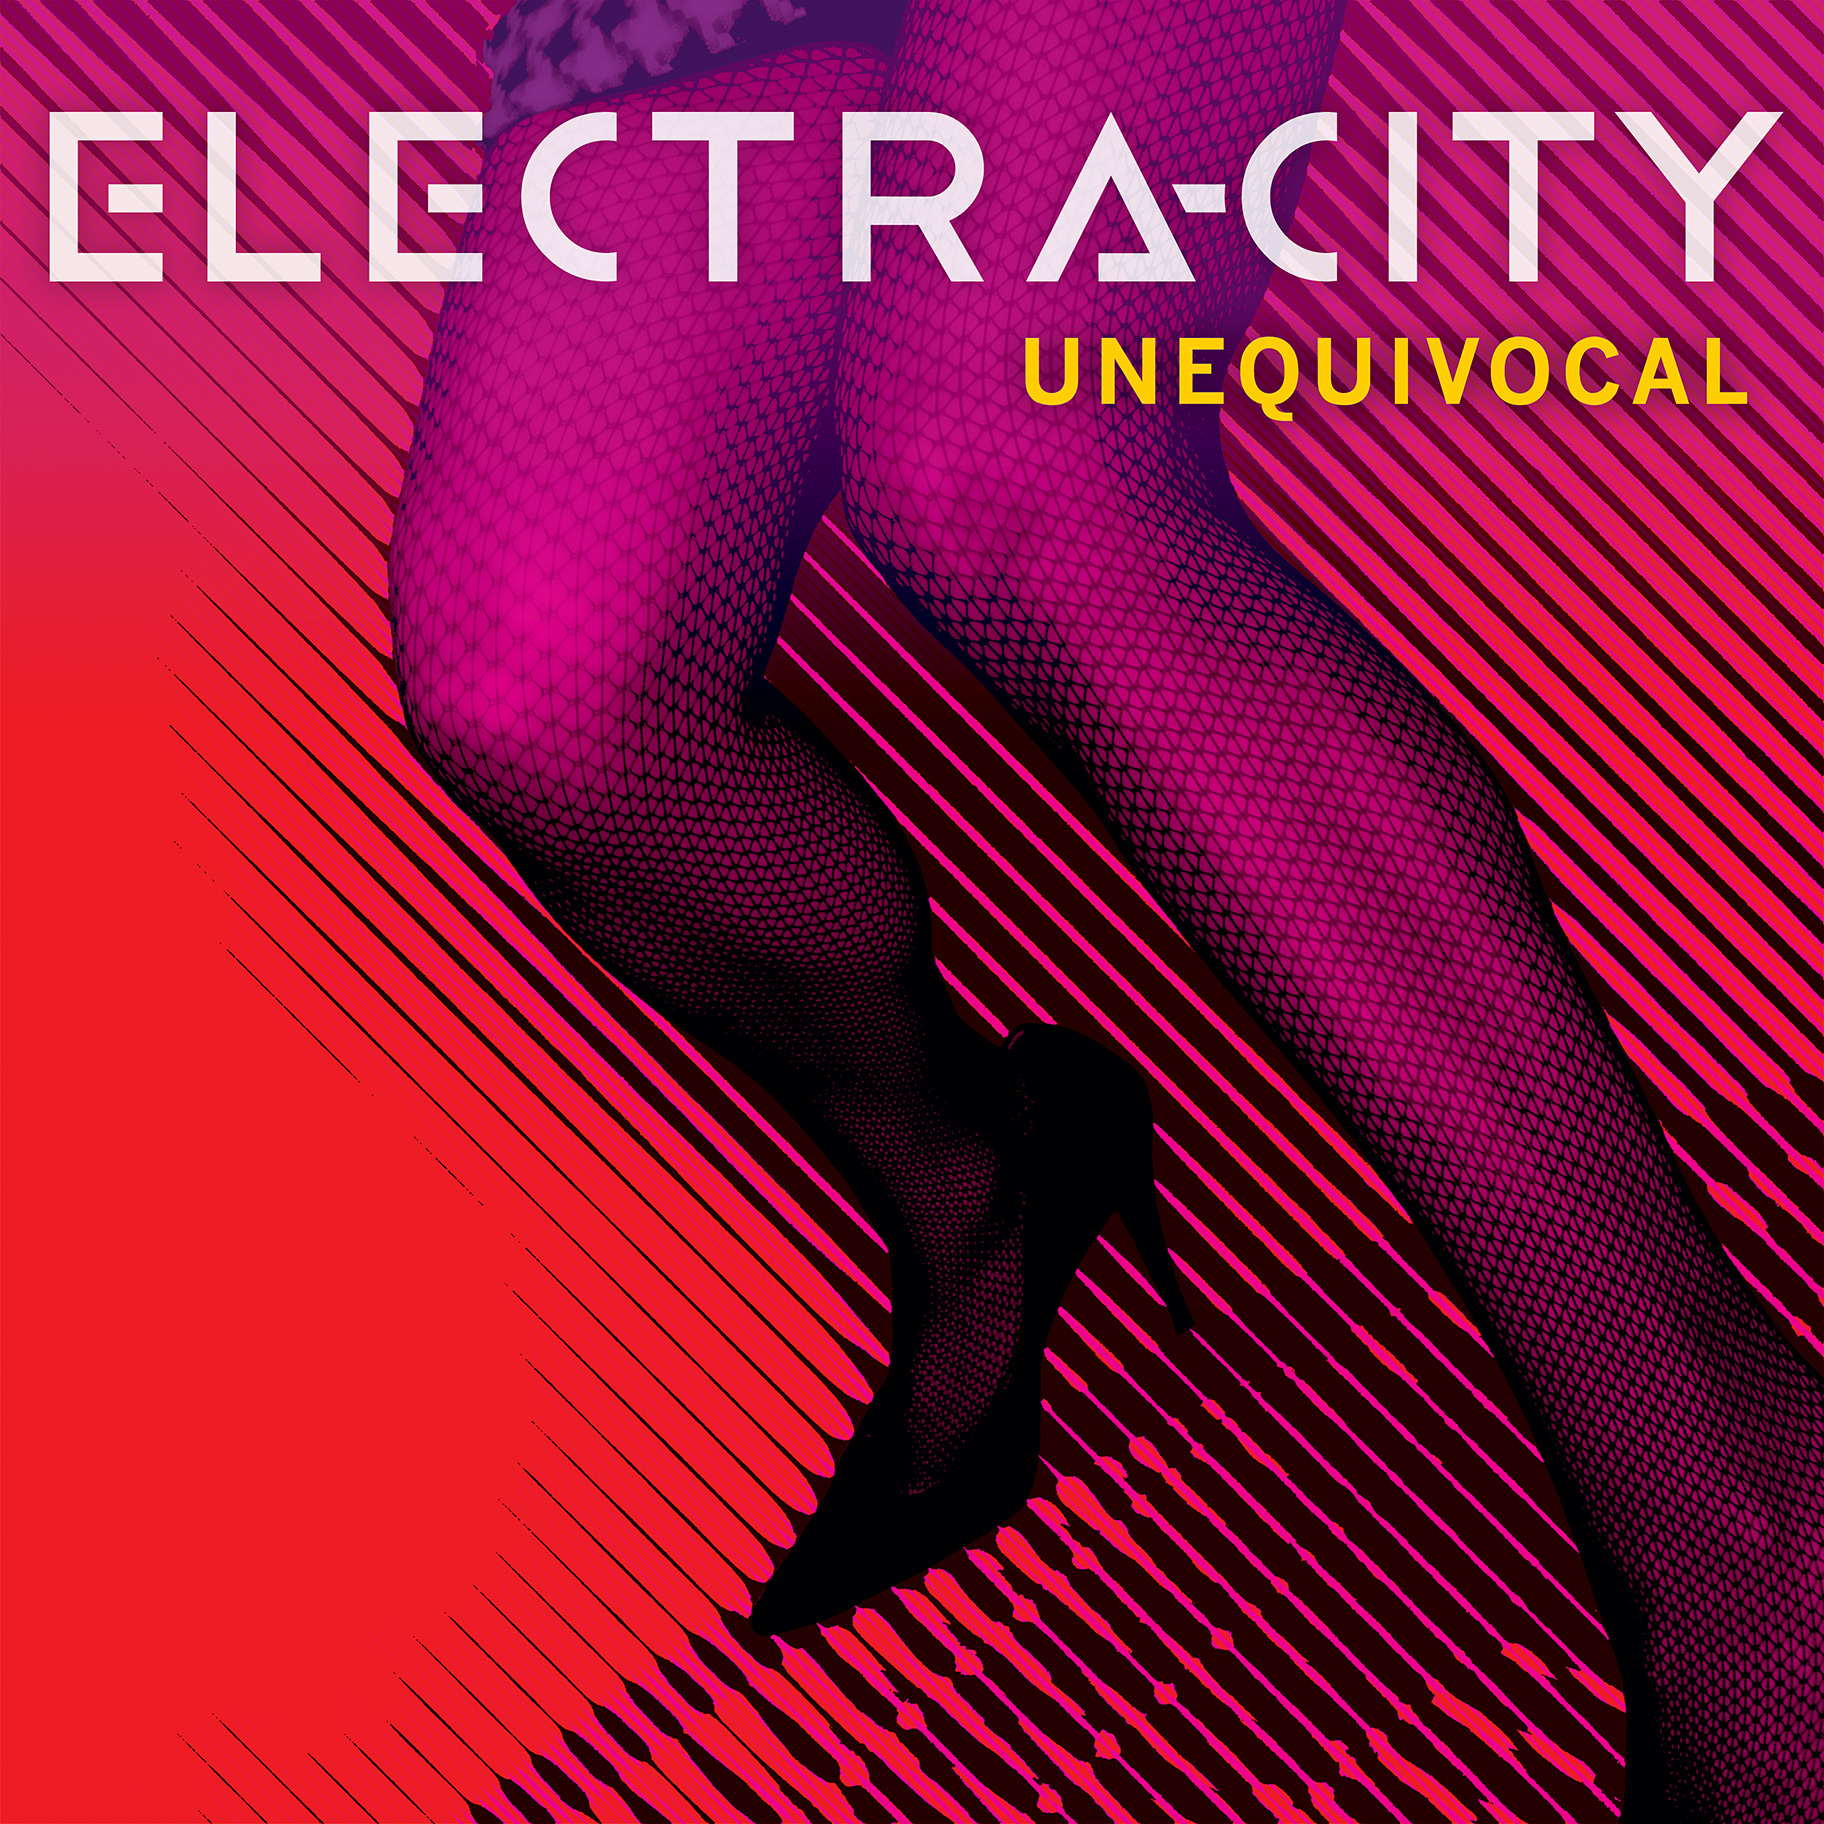 Electra-city_Unequivocal_EP_1824px